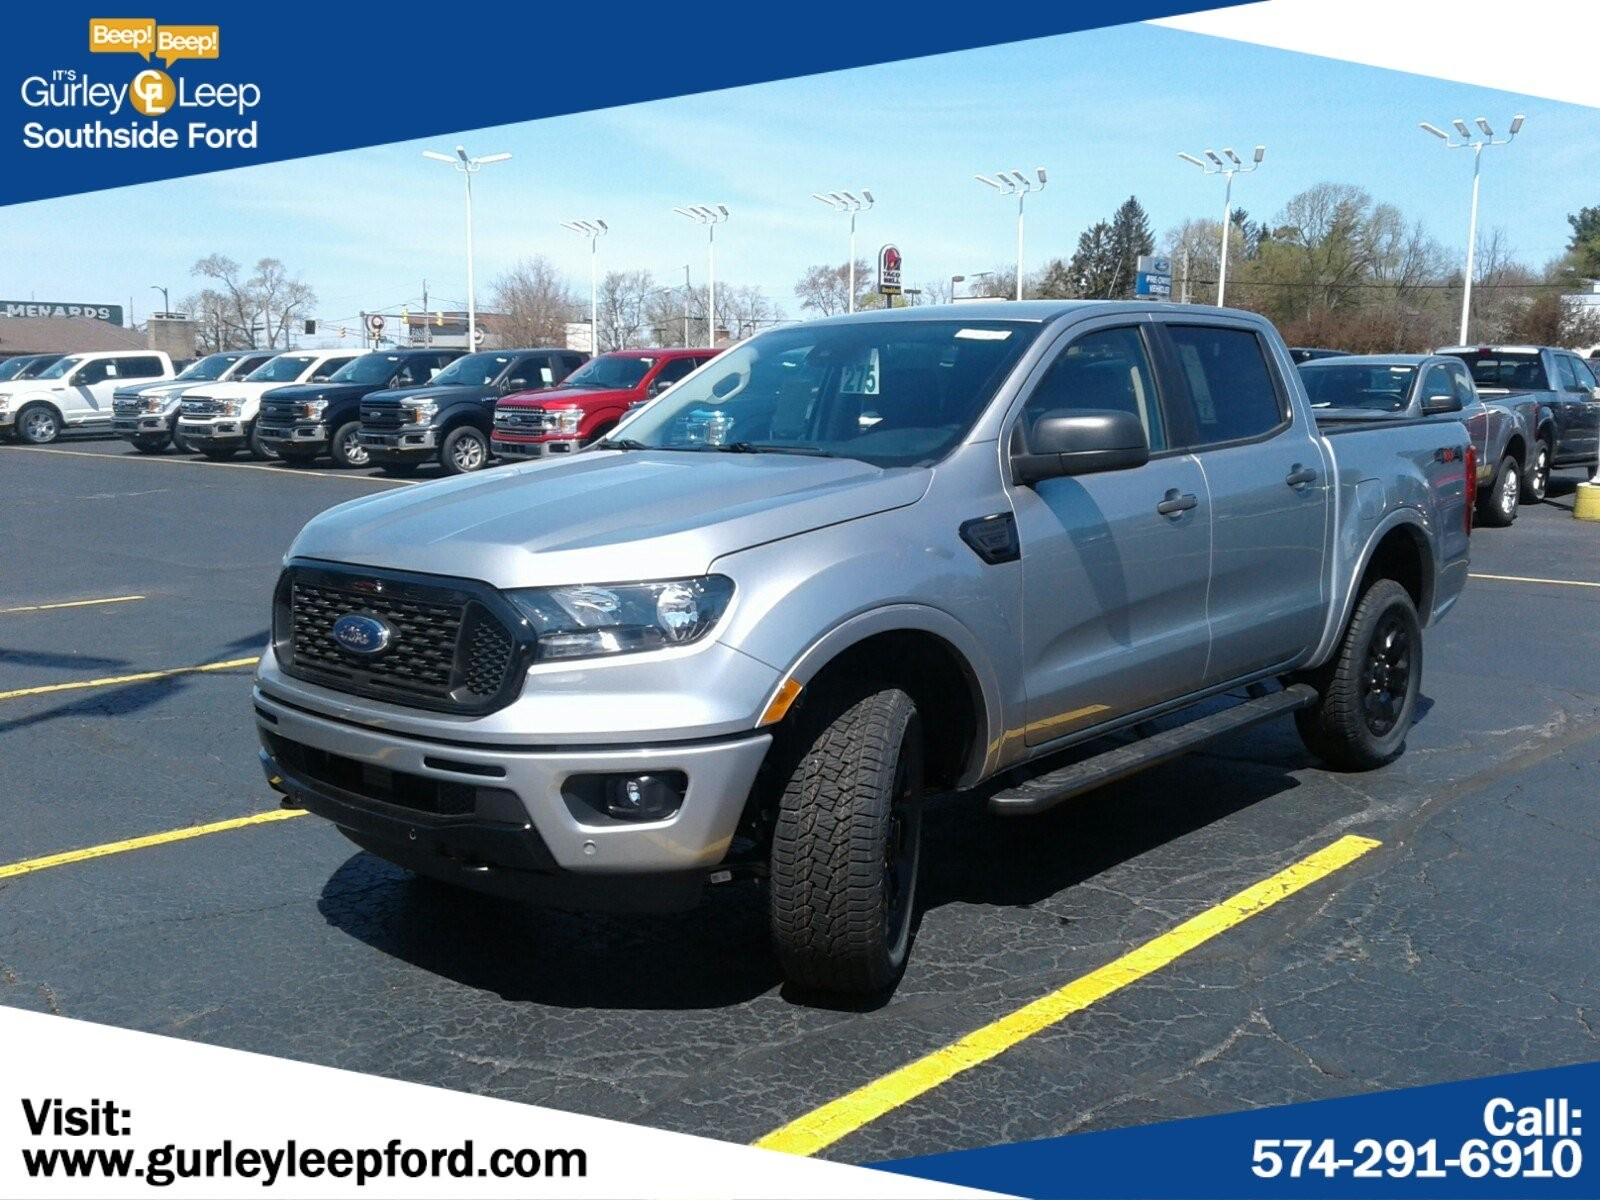 08ford Ranger Alt Wireing New 2020 ford Ranger Xlt with Navigation & 4wd Of 08ford Ranger Alt Wireing